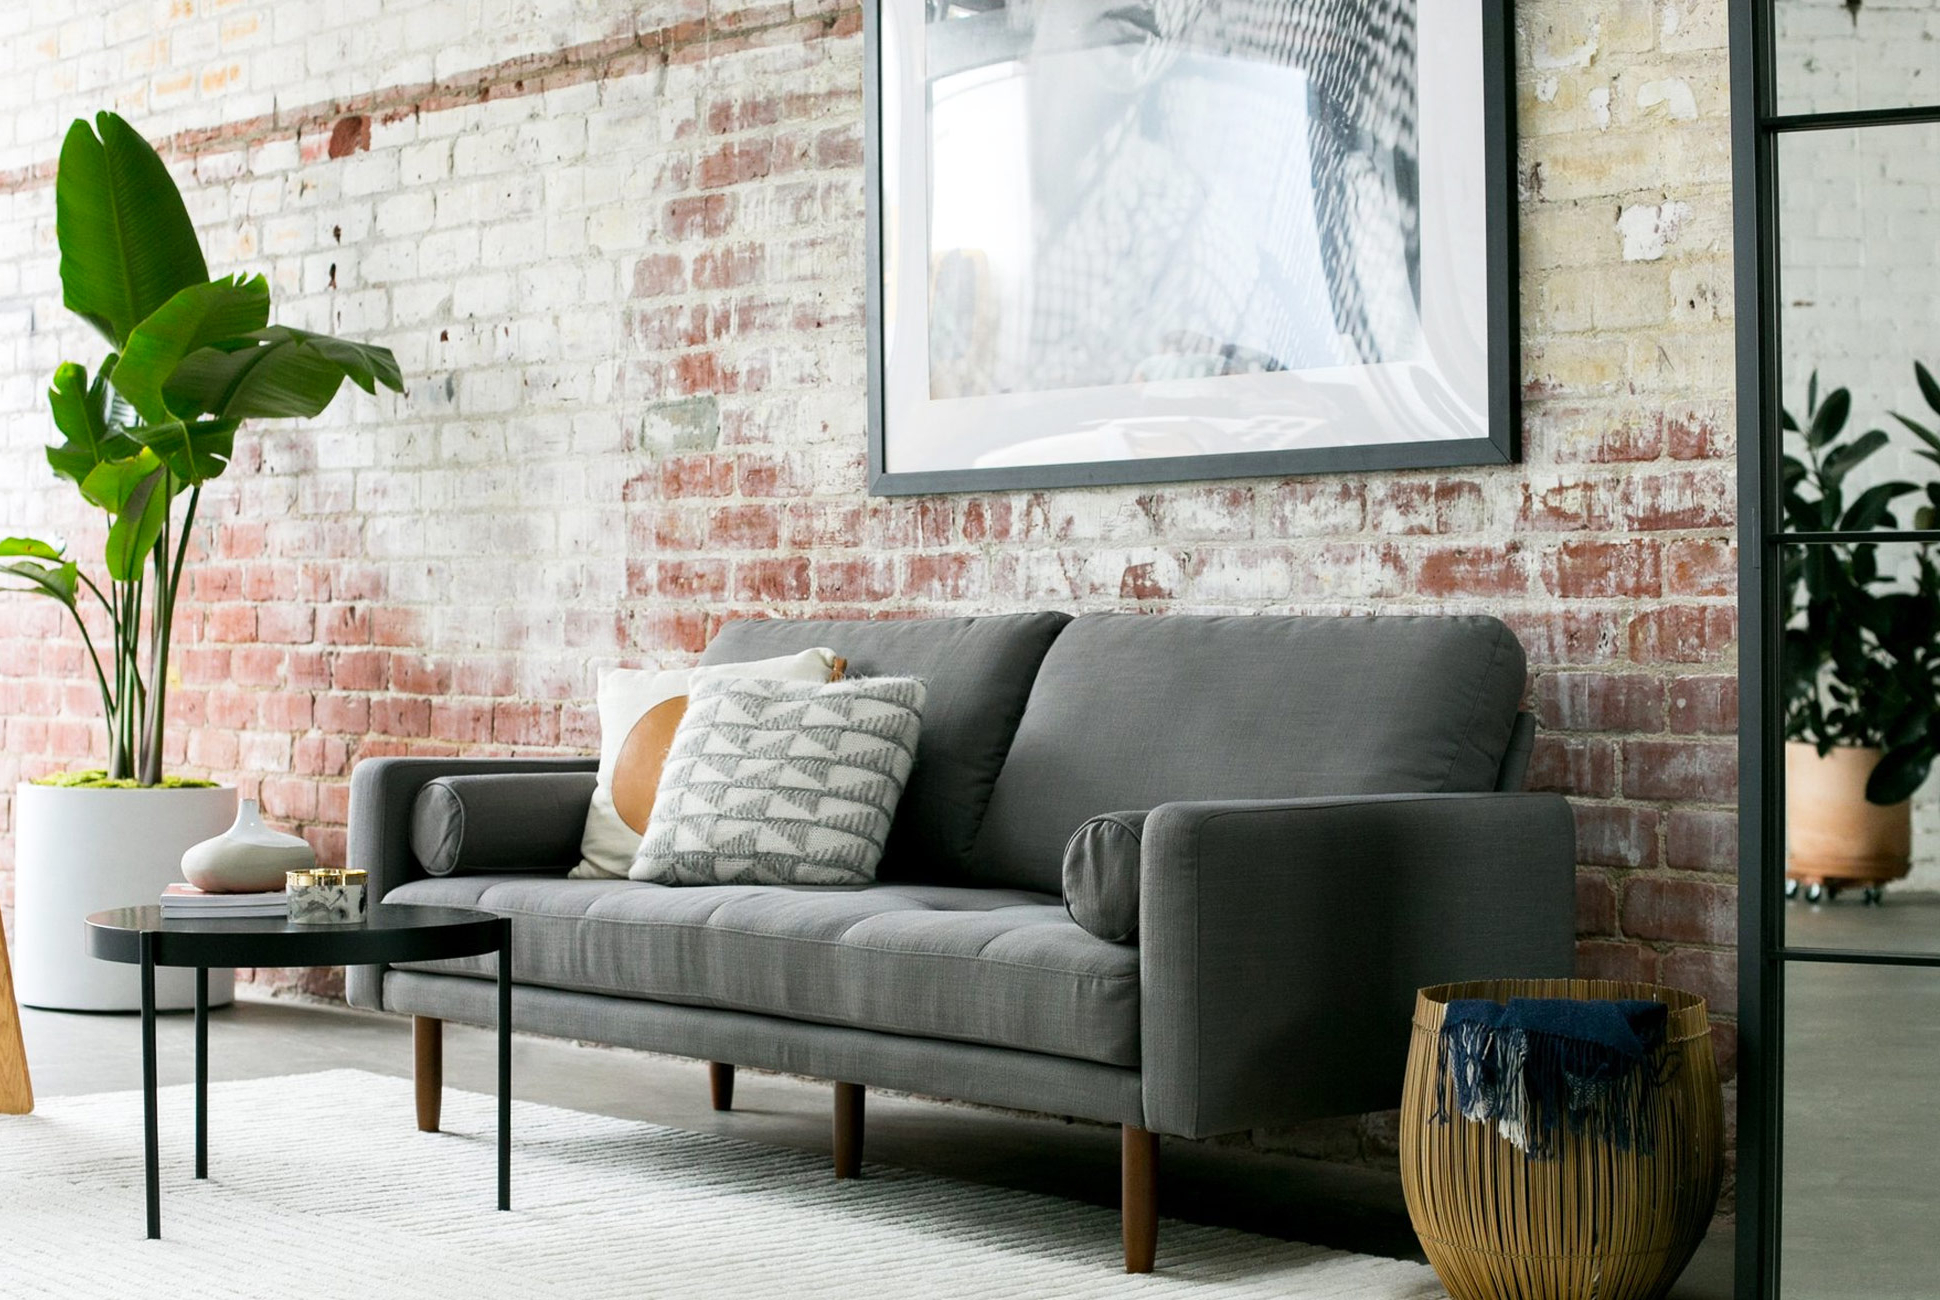 Cheap Sofa Chairs With Recent 14 Best Sofas And Couches You Can Buy In 2018 • Gear Patrol (Gallery 7 of 20)